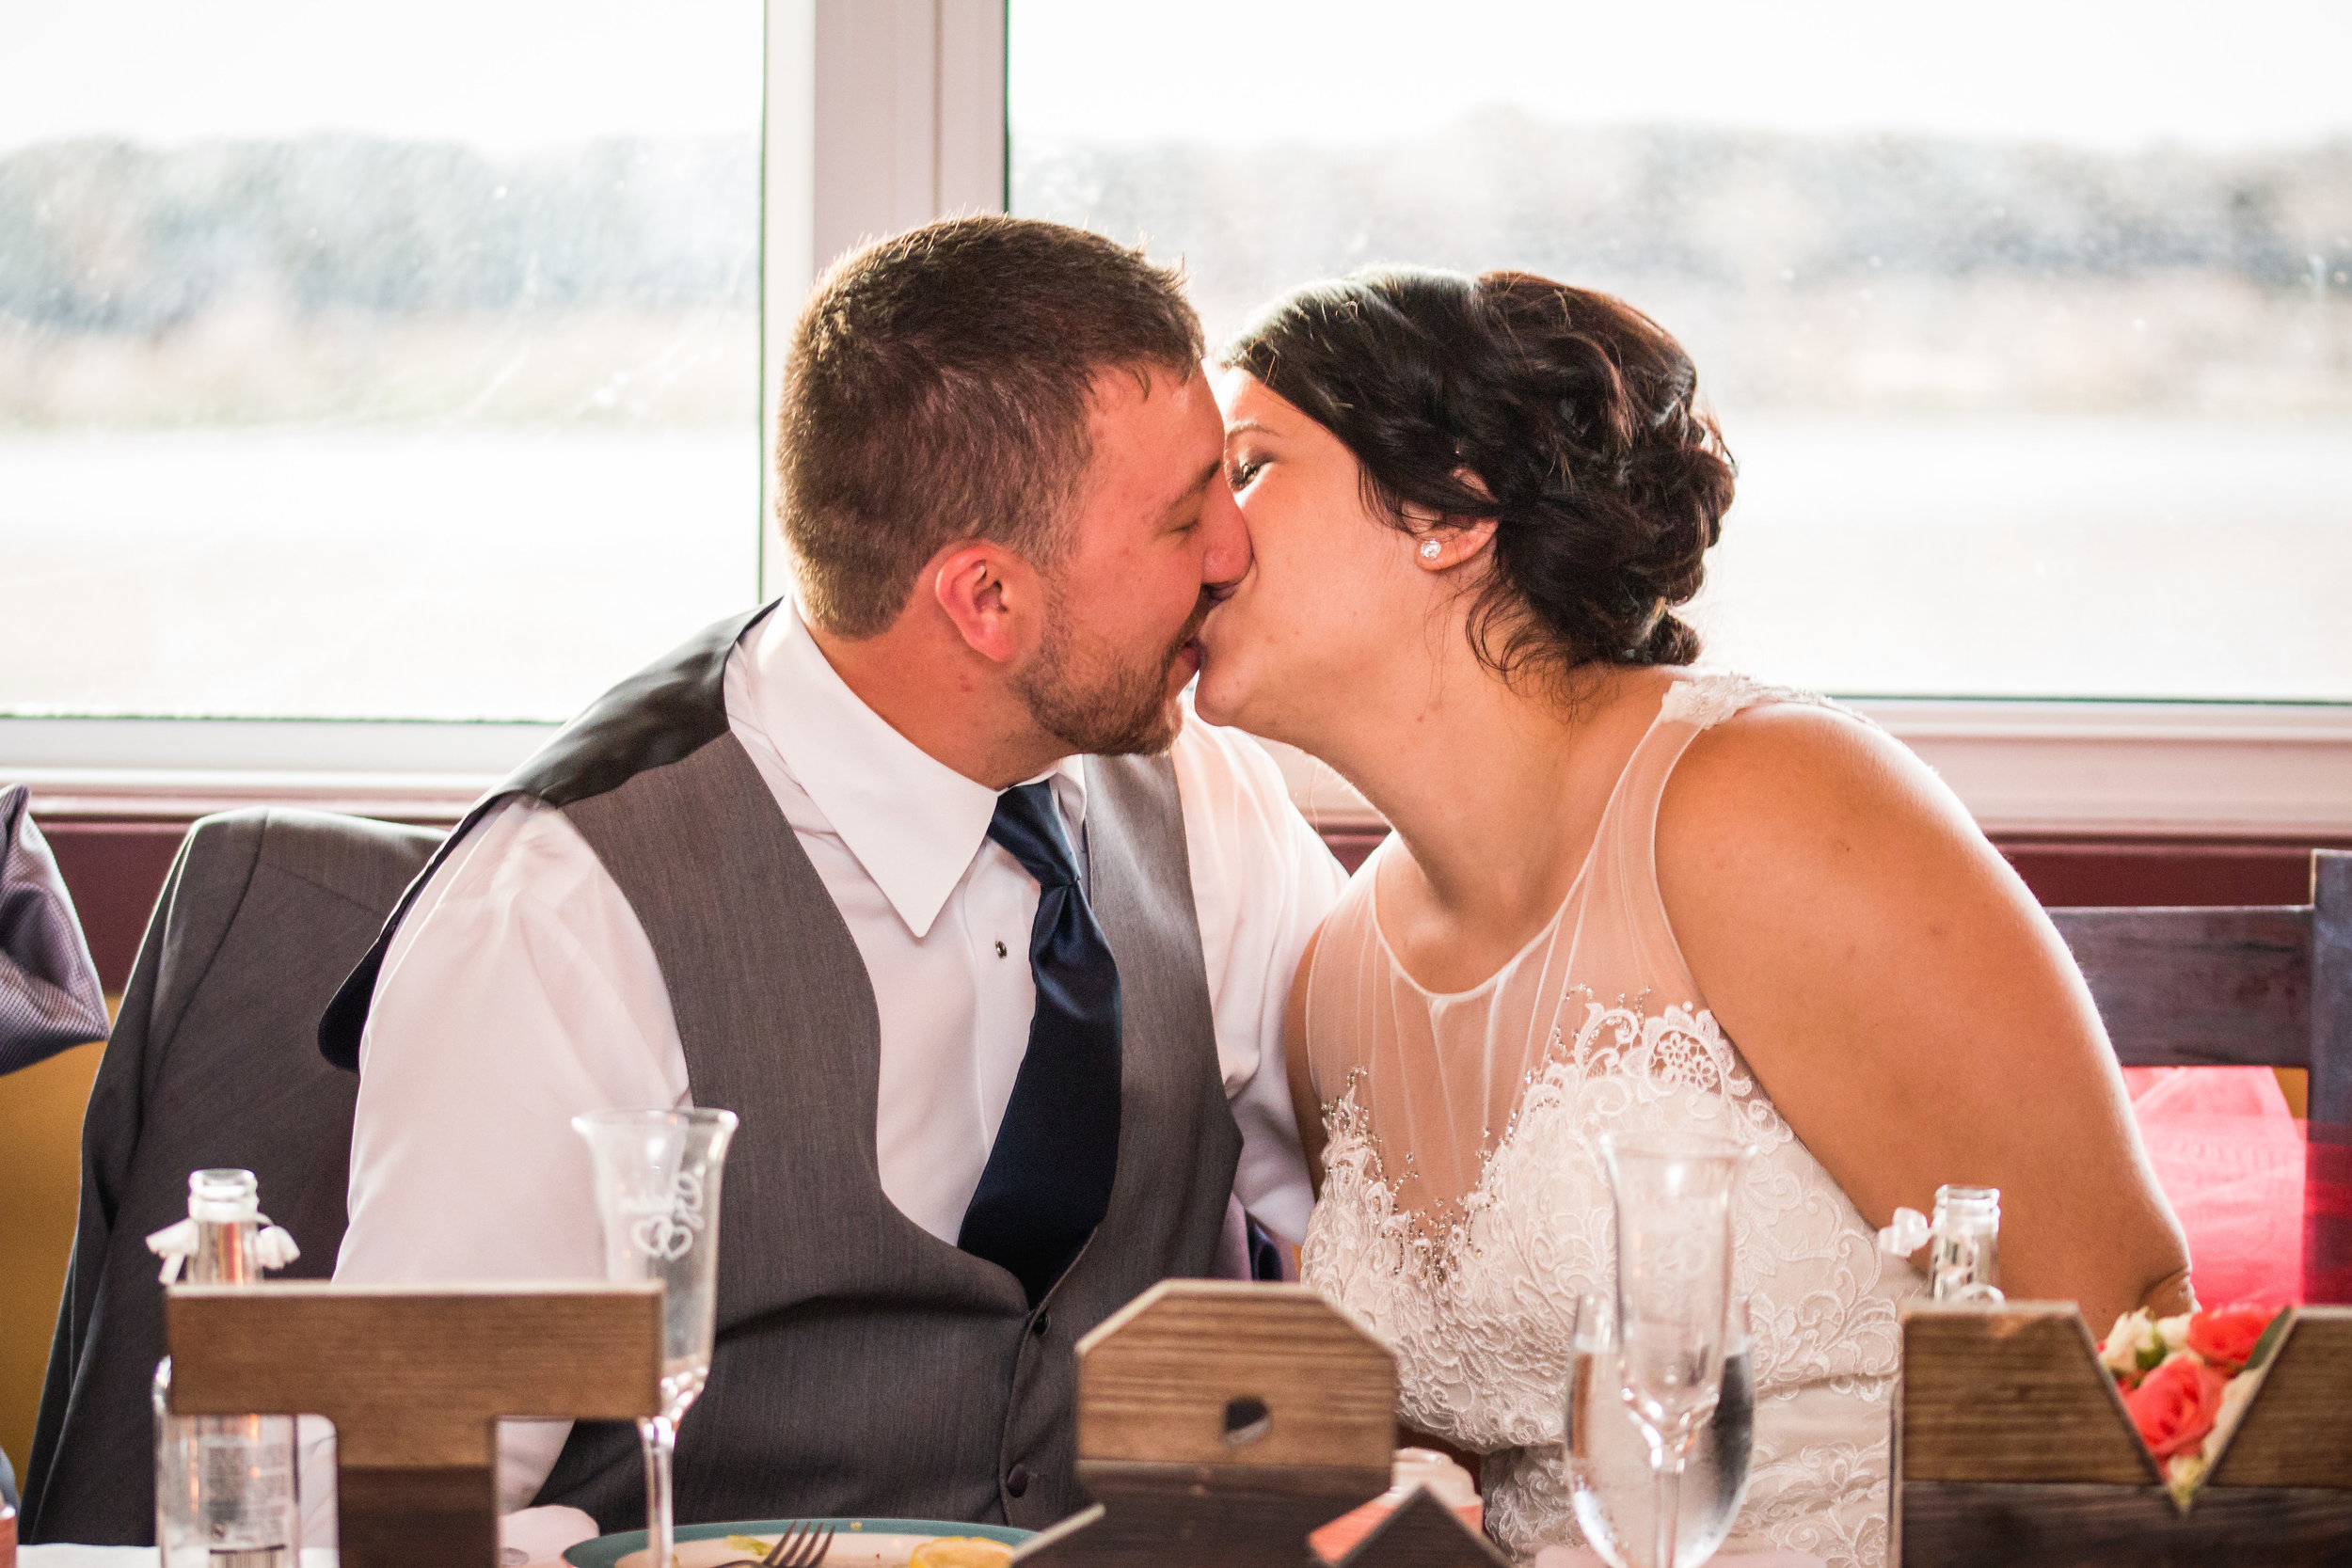 Margaree_Cote_Cape_Breton_Nova_Scotia_Wedding_Photographer